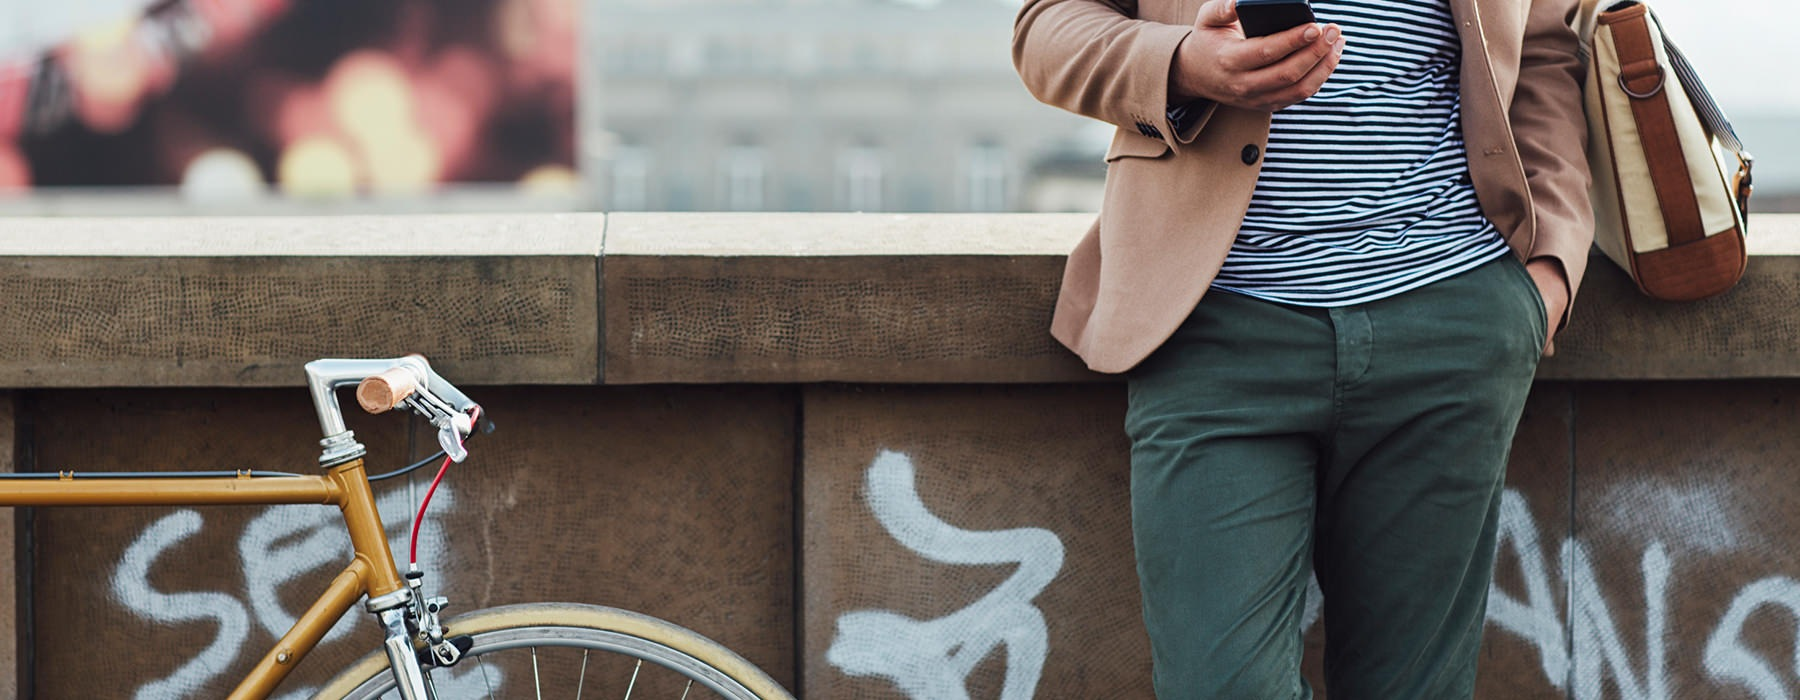 lifestyle image of a man beside his bicycle